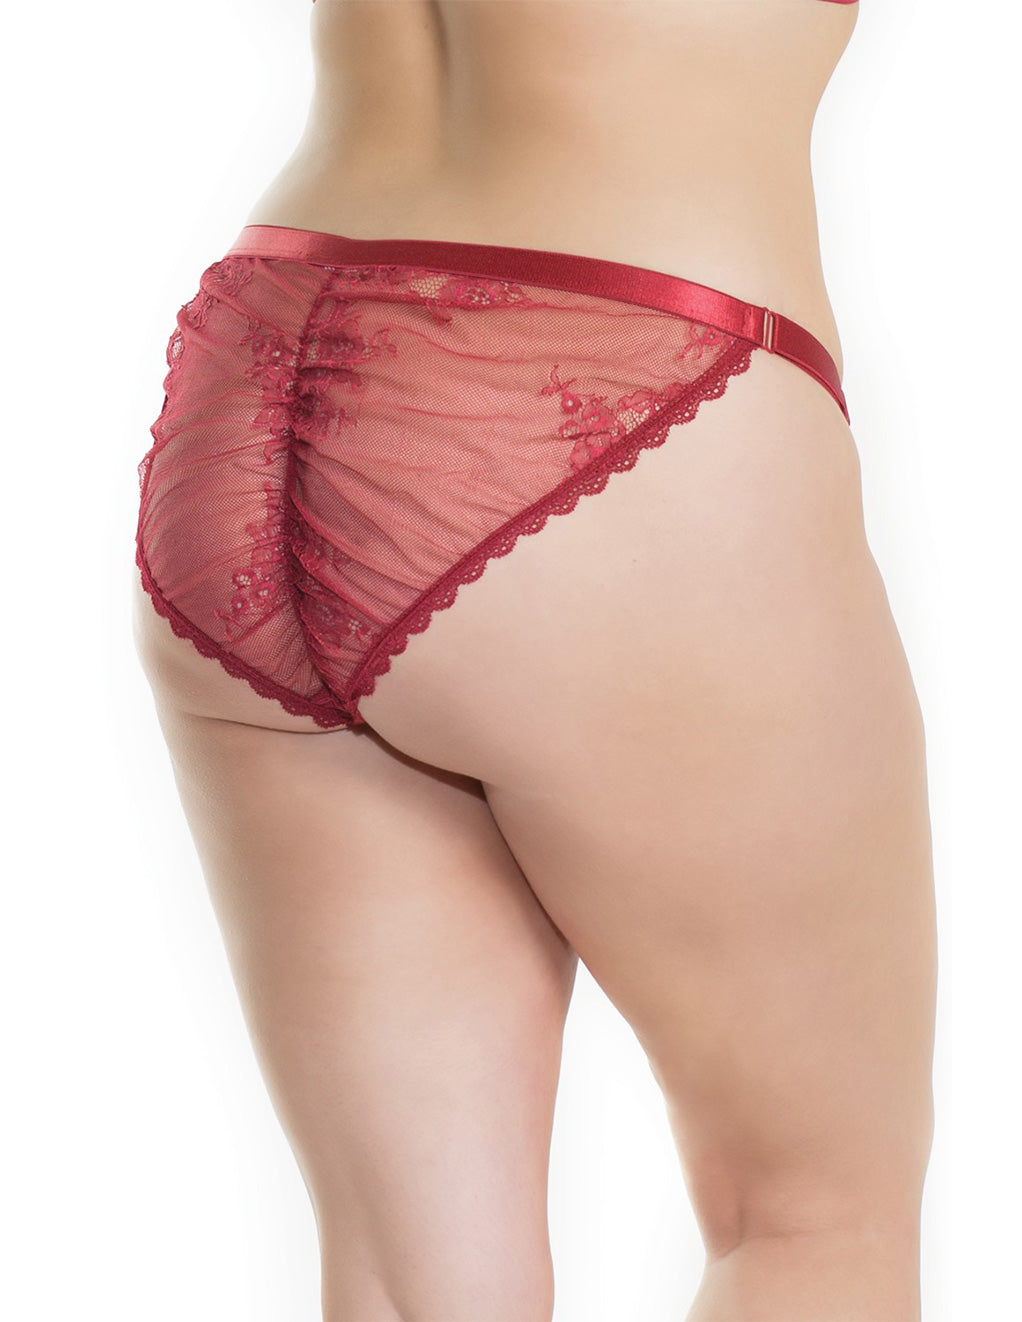 Low-Rise Mesh Satin Trim Panty- Plus size- Back